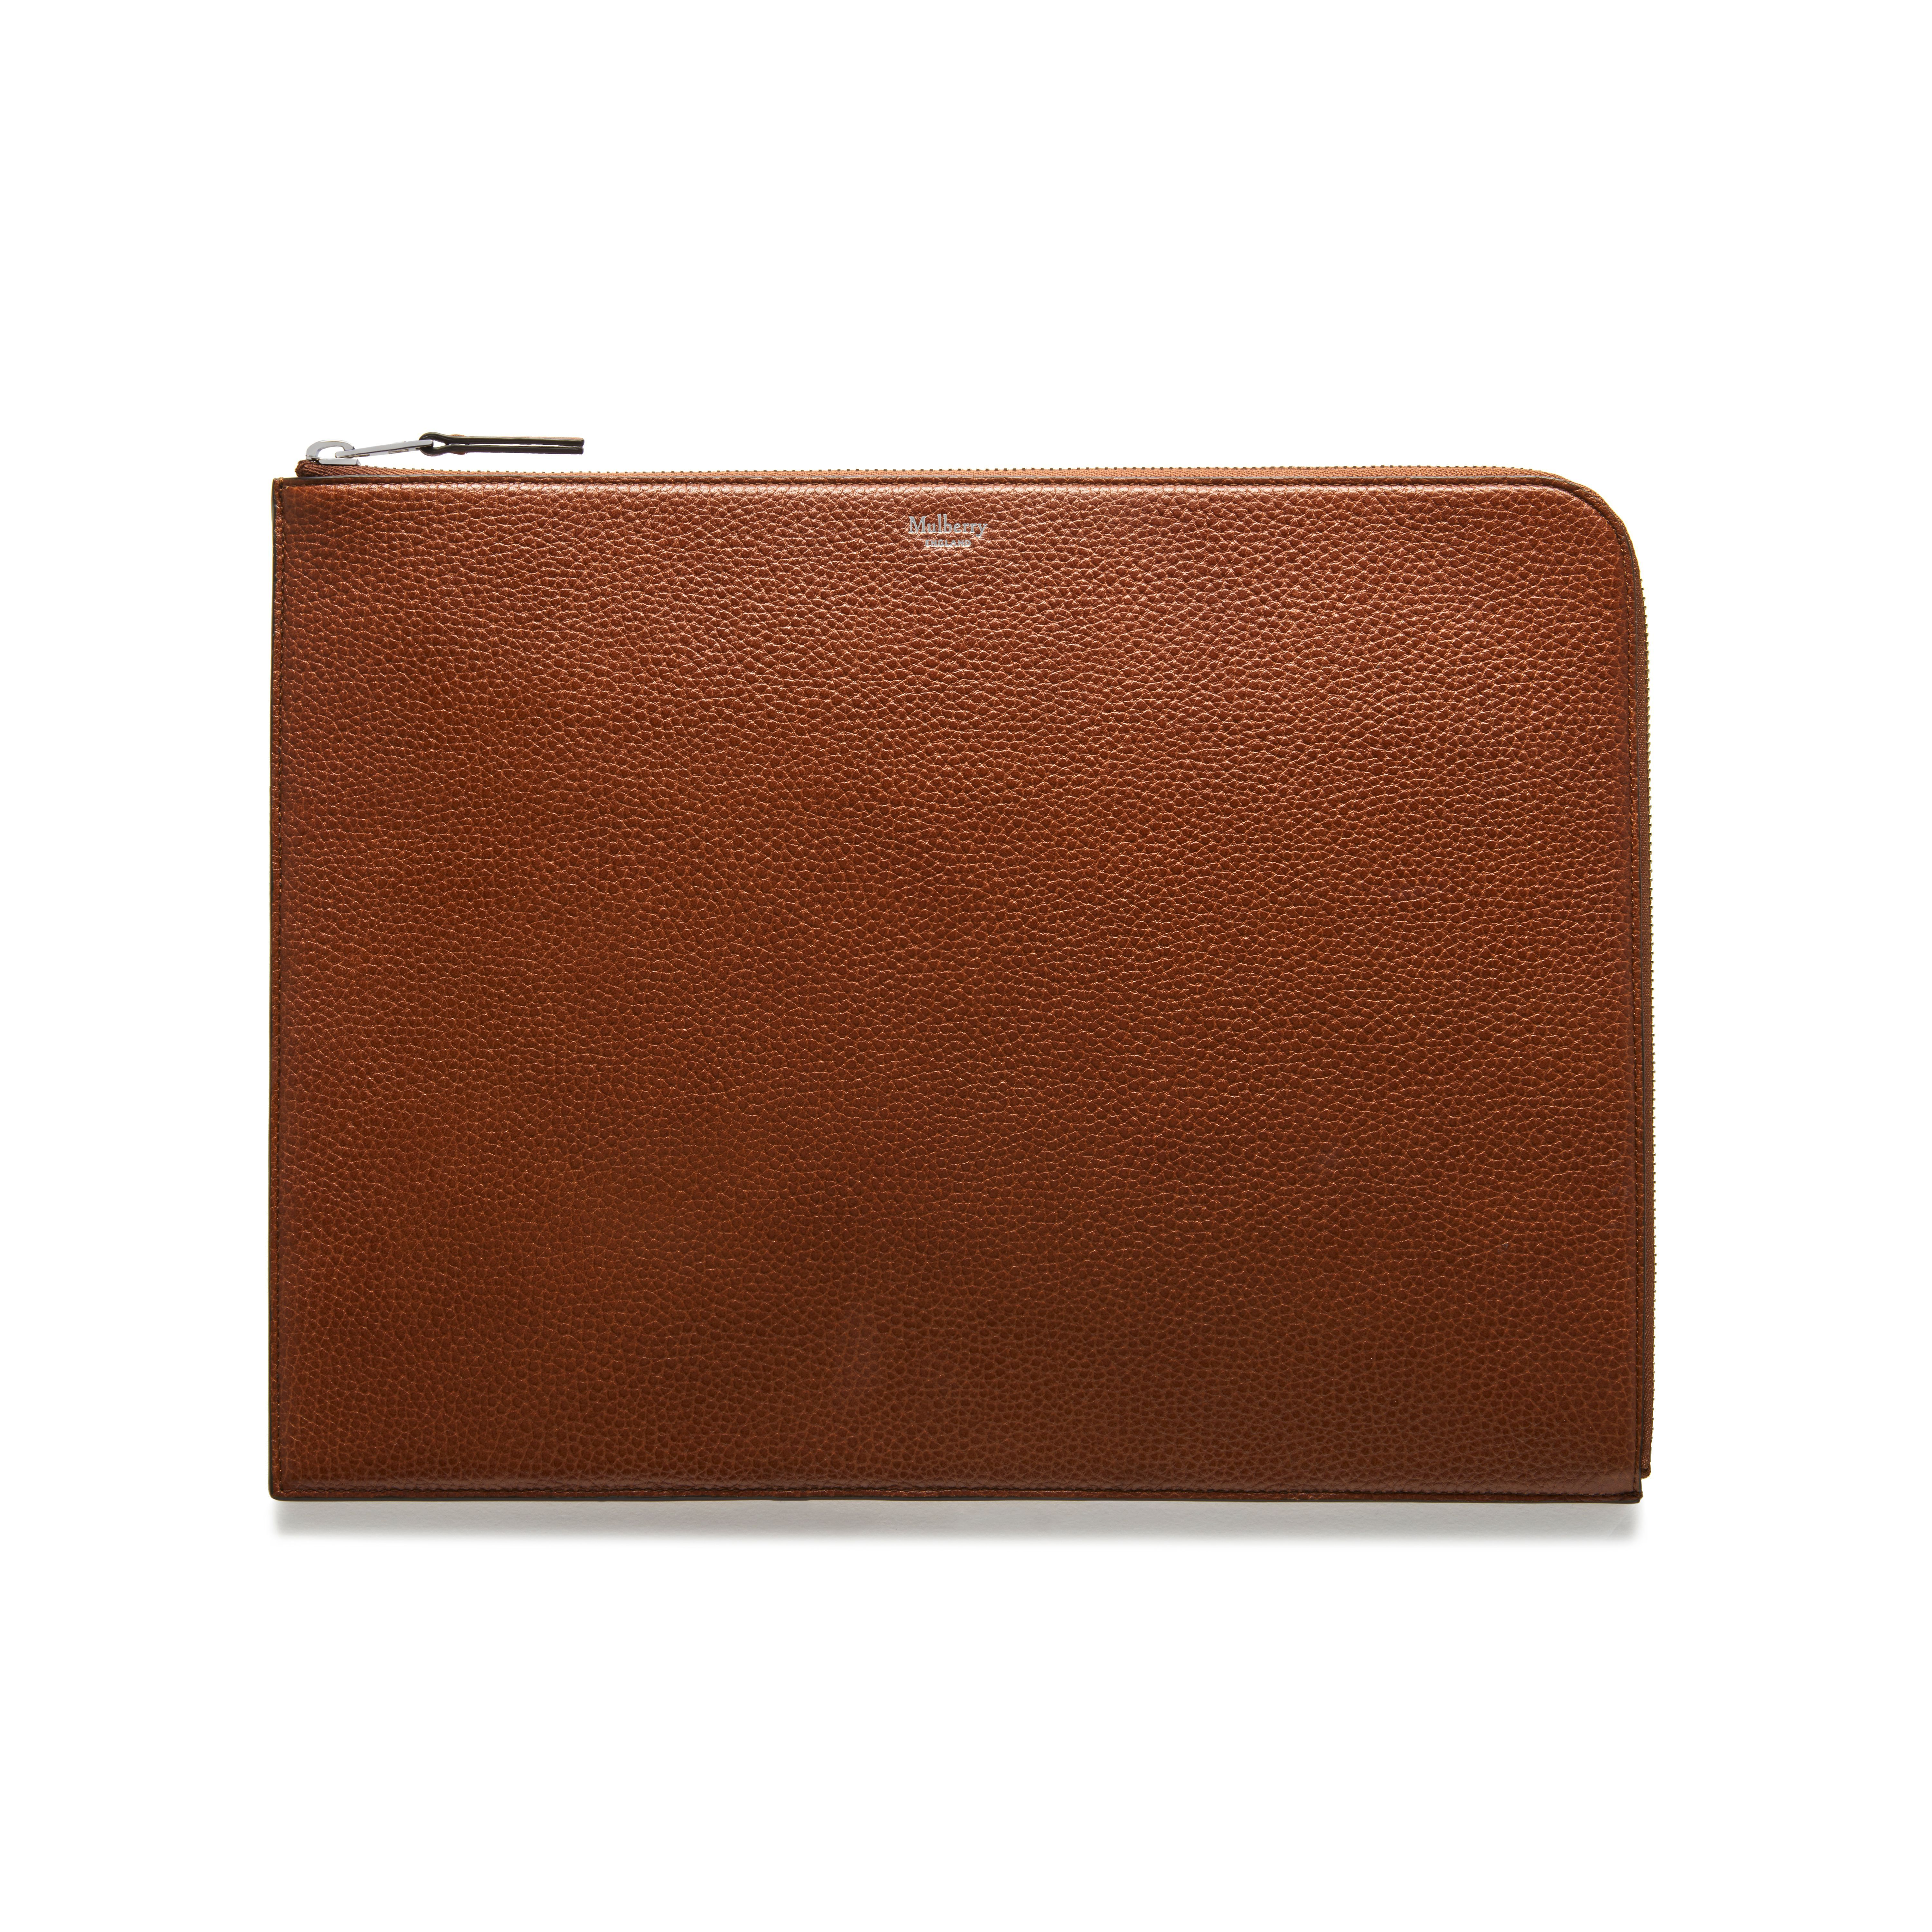 4ca7b5c1fb82 Shop the Large Tech Pouch in Oak Natural Grain Leather at Mulberry.com. Stay